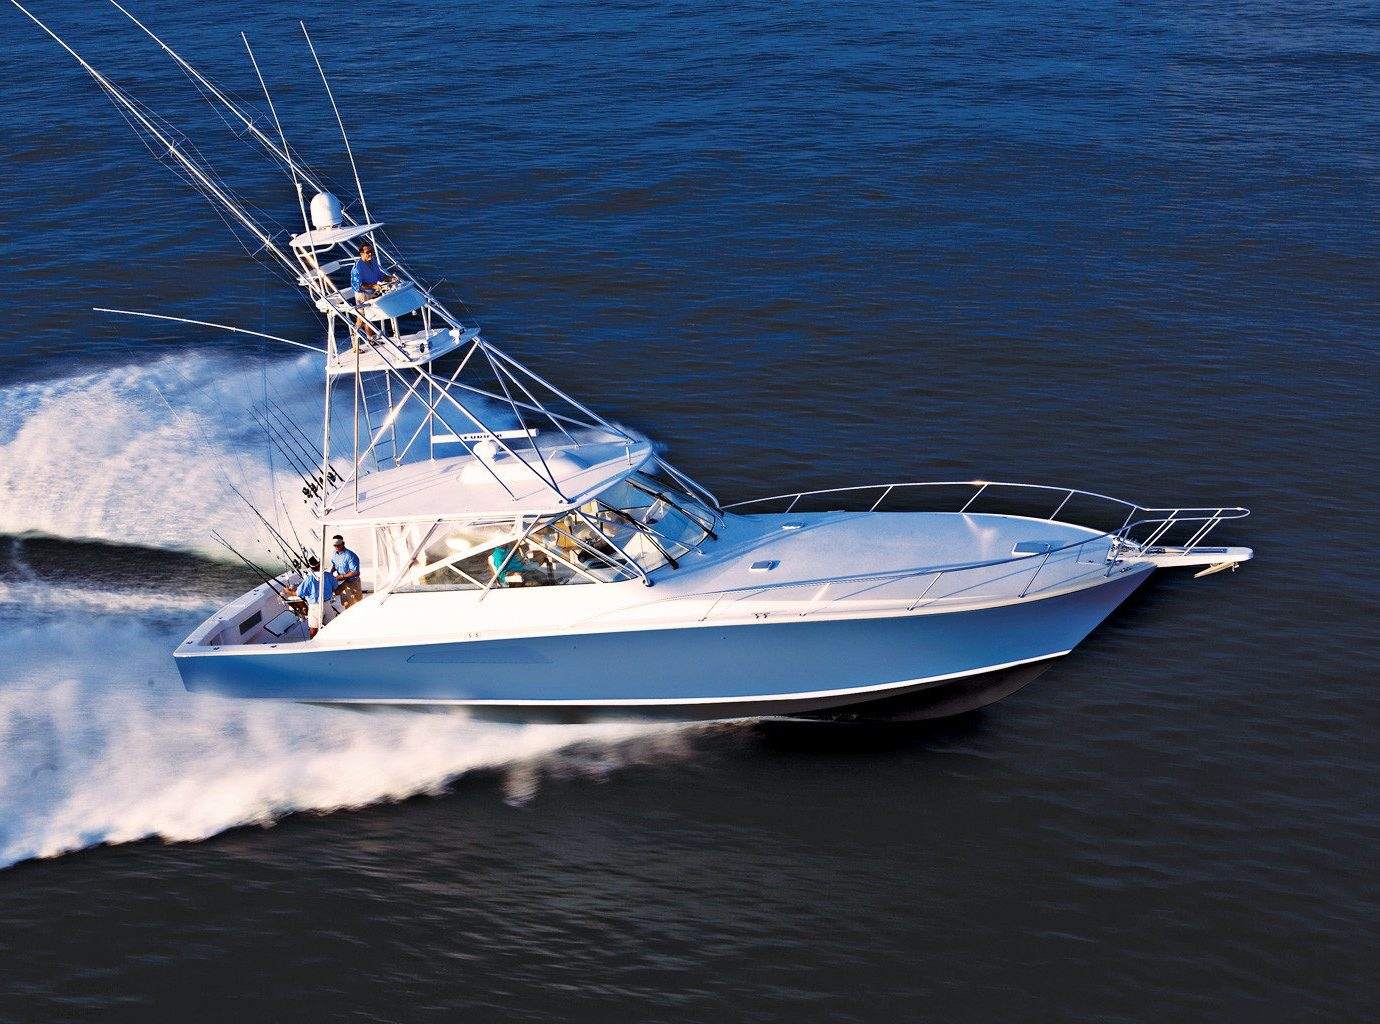 Boat Nature Ocean Outdoor Activities Outdoors Secret Getaways Sport Trip Ideas water outdoor vehicle sailing Sea yacht luxury yacht fishing vessel watercraft sailboat boating skiff sail motorboat sailboat racing blue pulled